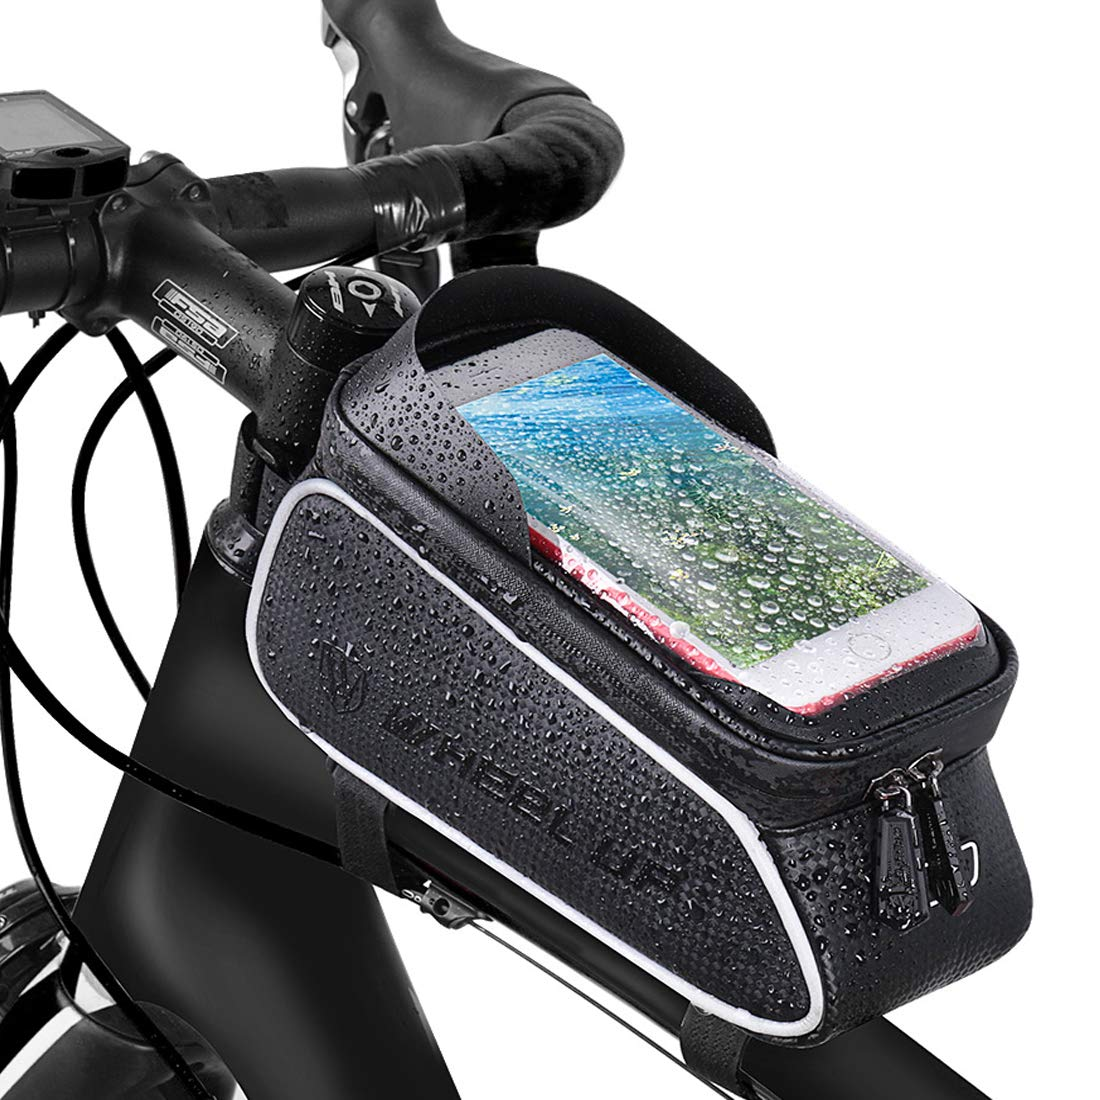 6 Touch Screen Bike Handlebar Bag Waterproof Bicycle Phone Holder Bag Cycling Pouch Pannier Bike Phone Holder Stand for iPhone 11 XS MAX XR X 8 7 6 6S Plus Samsung LG Sony HUAWEI Xiaomi Smartphone